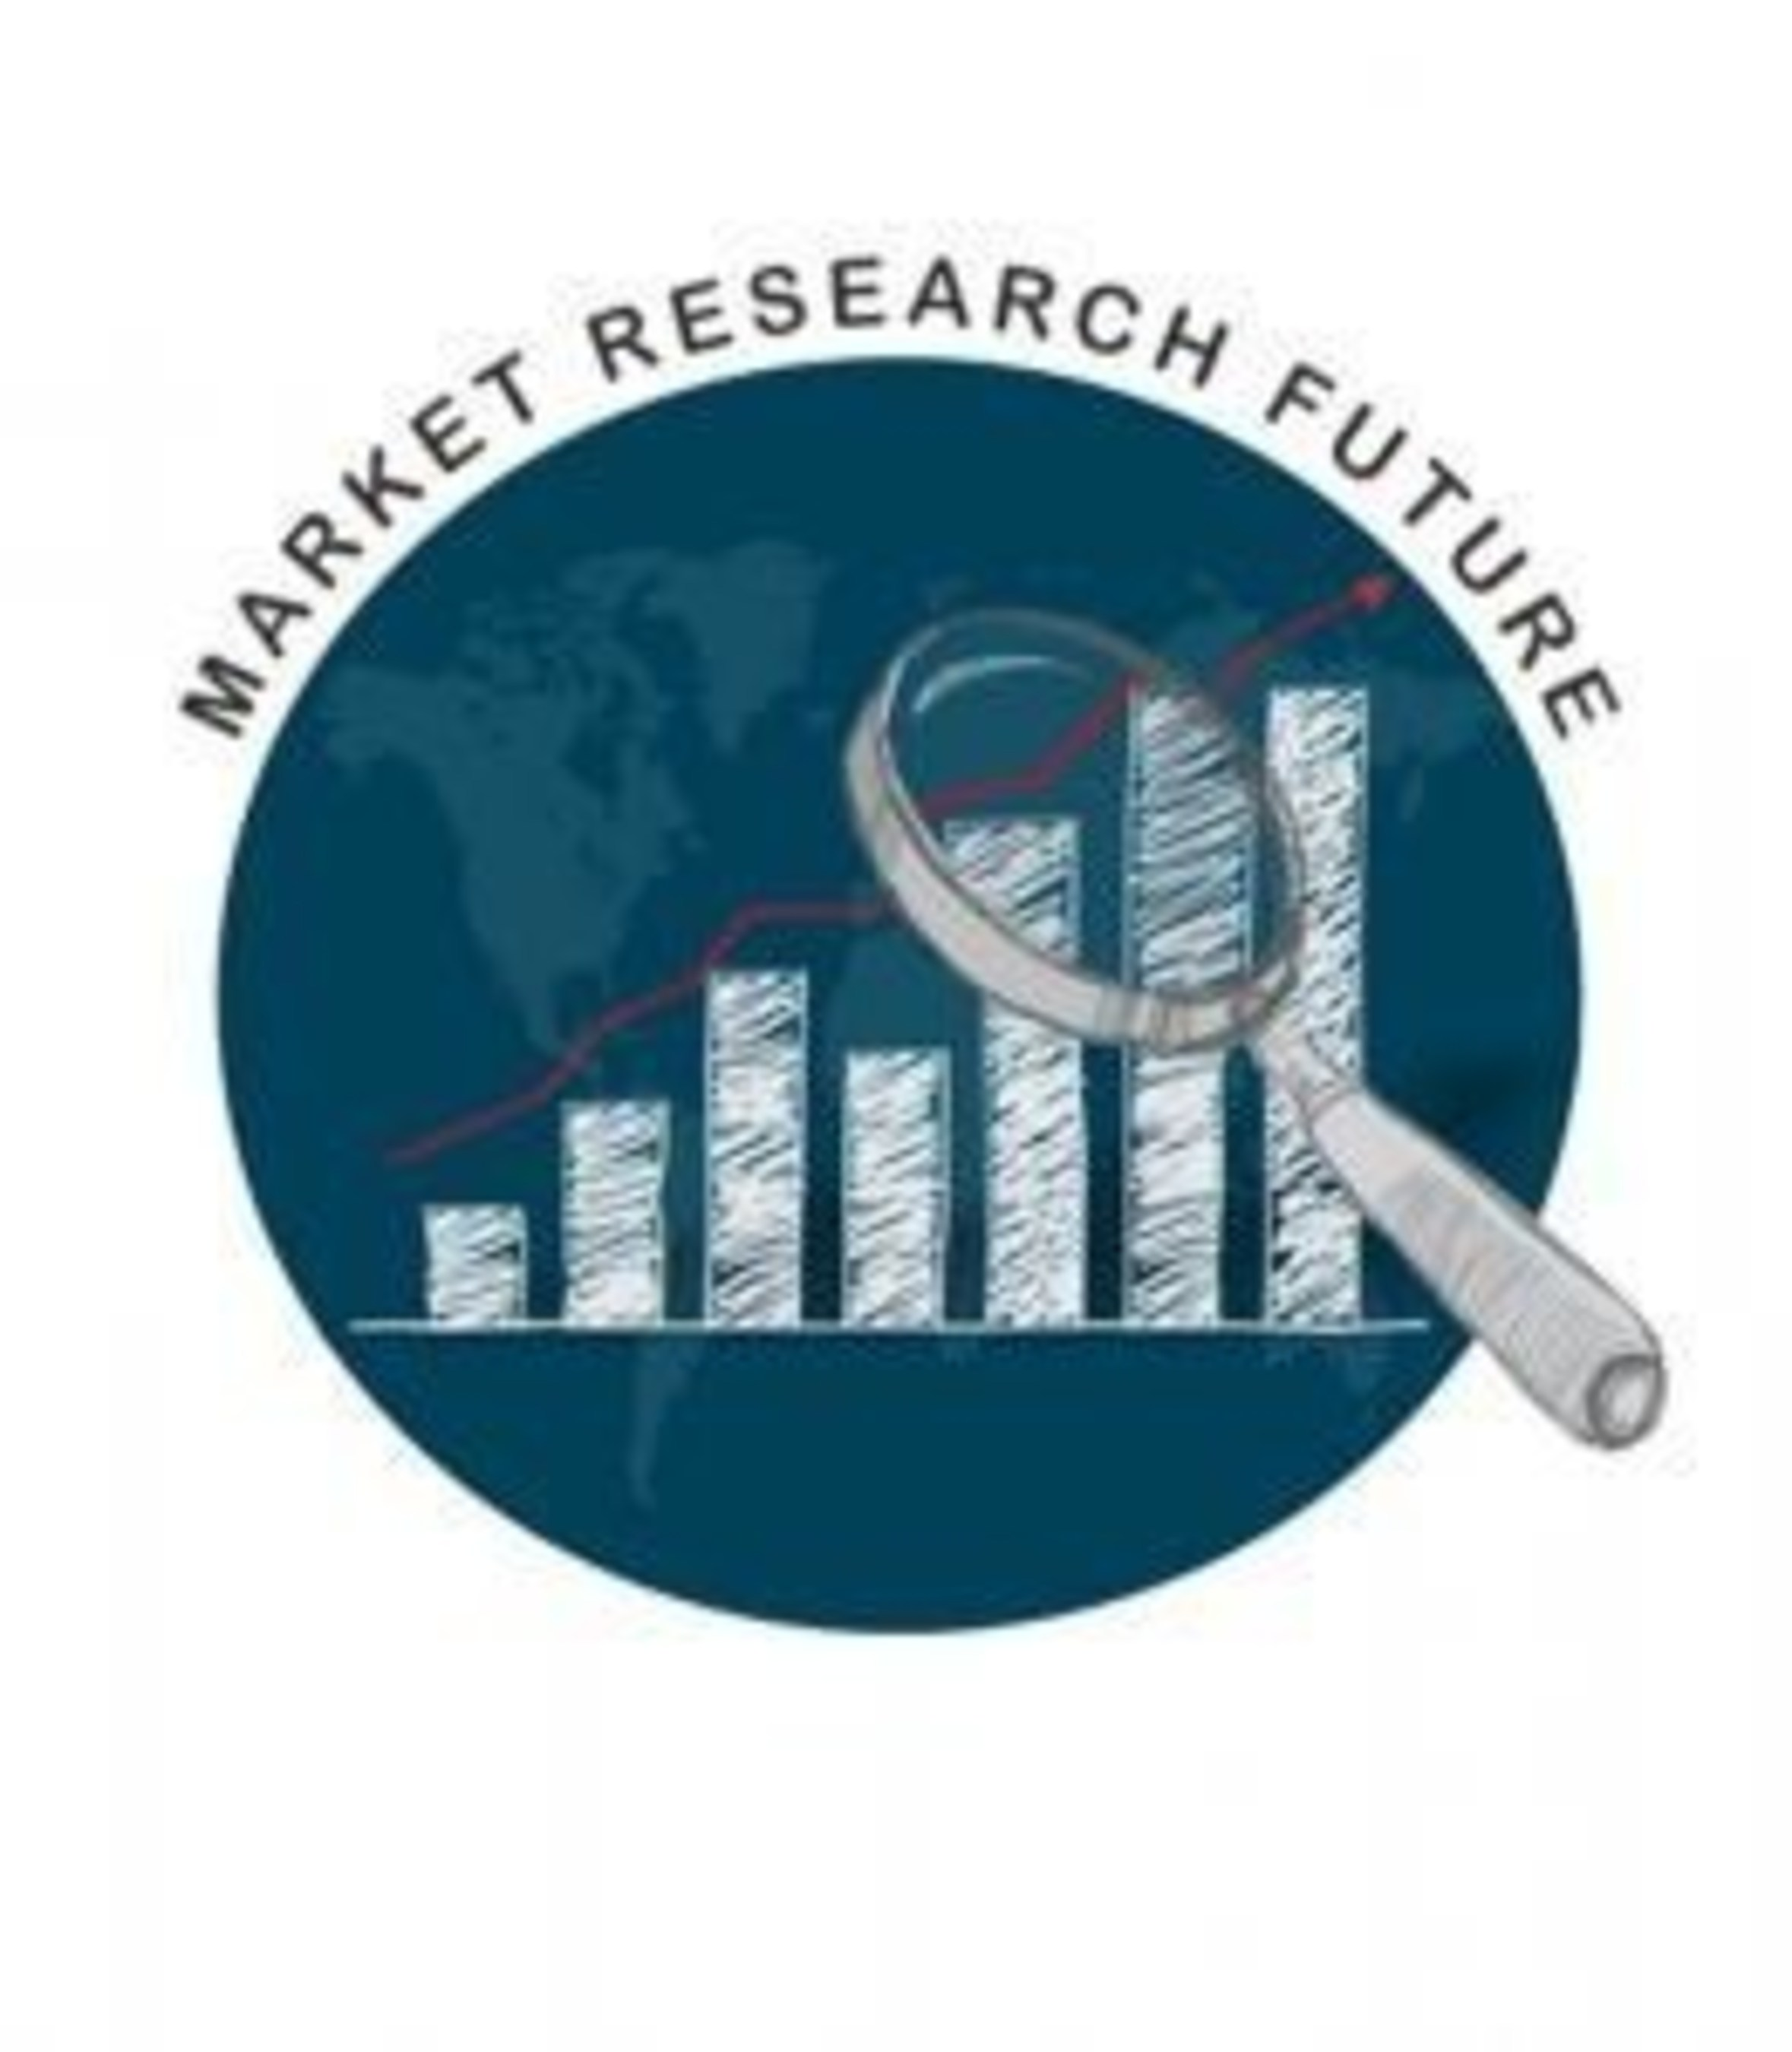 Global Natural Language Processing (NLP) Market Scenario, Applications, Industry Size, Key Players, Drivers, Competitor Strategy and Regional Forecast To 2022